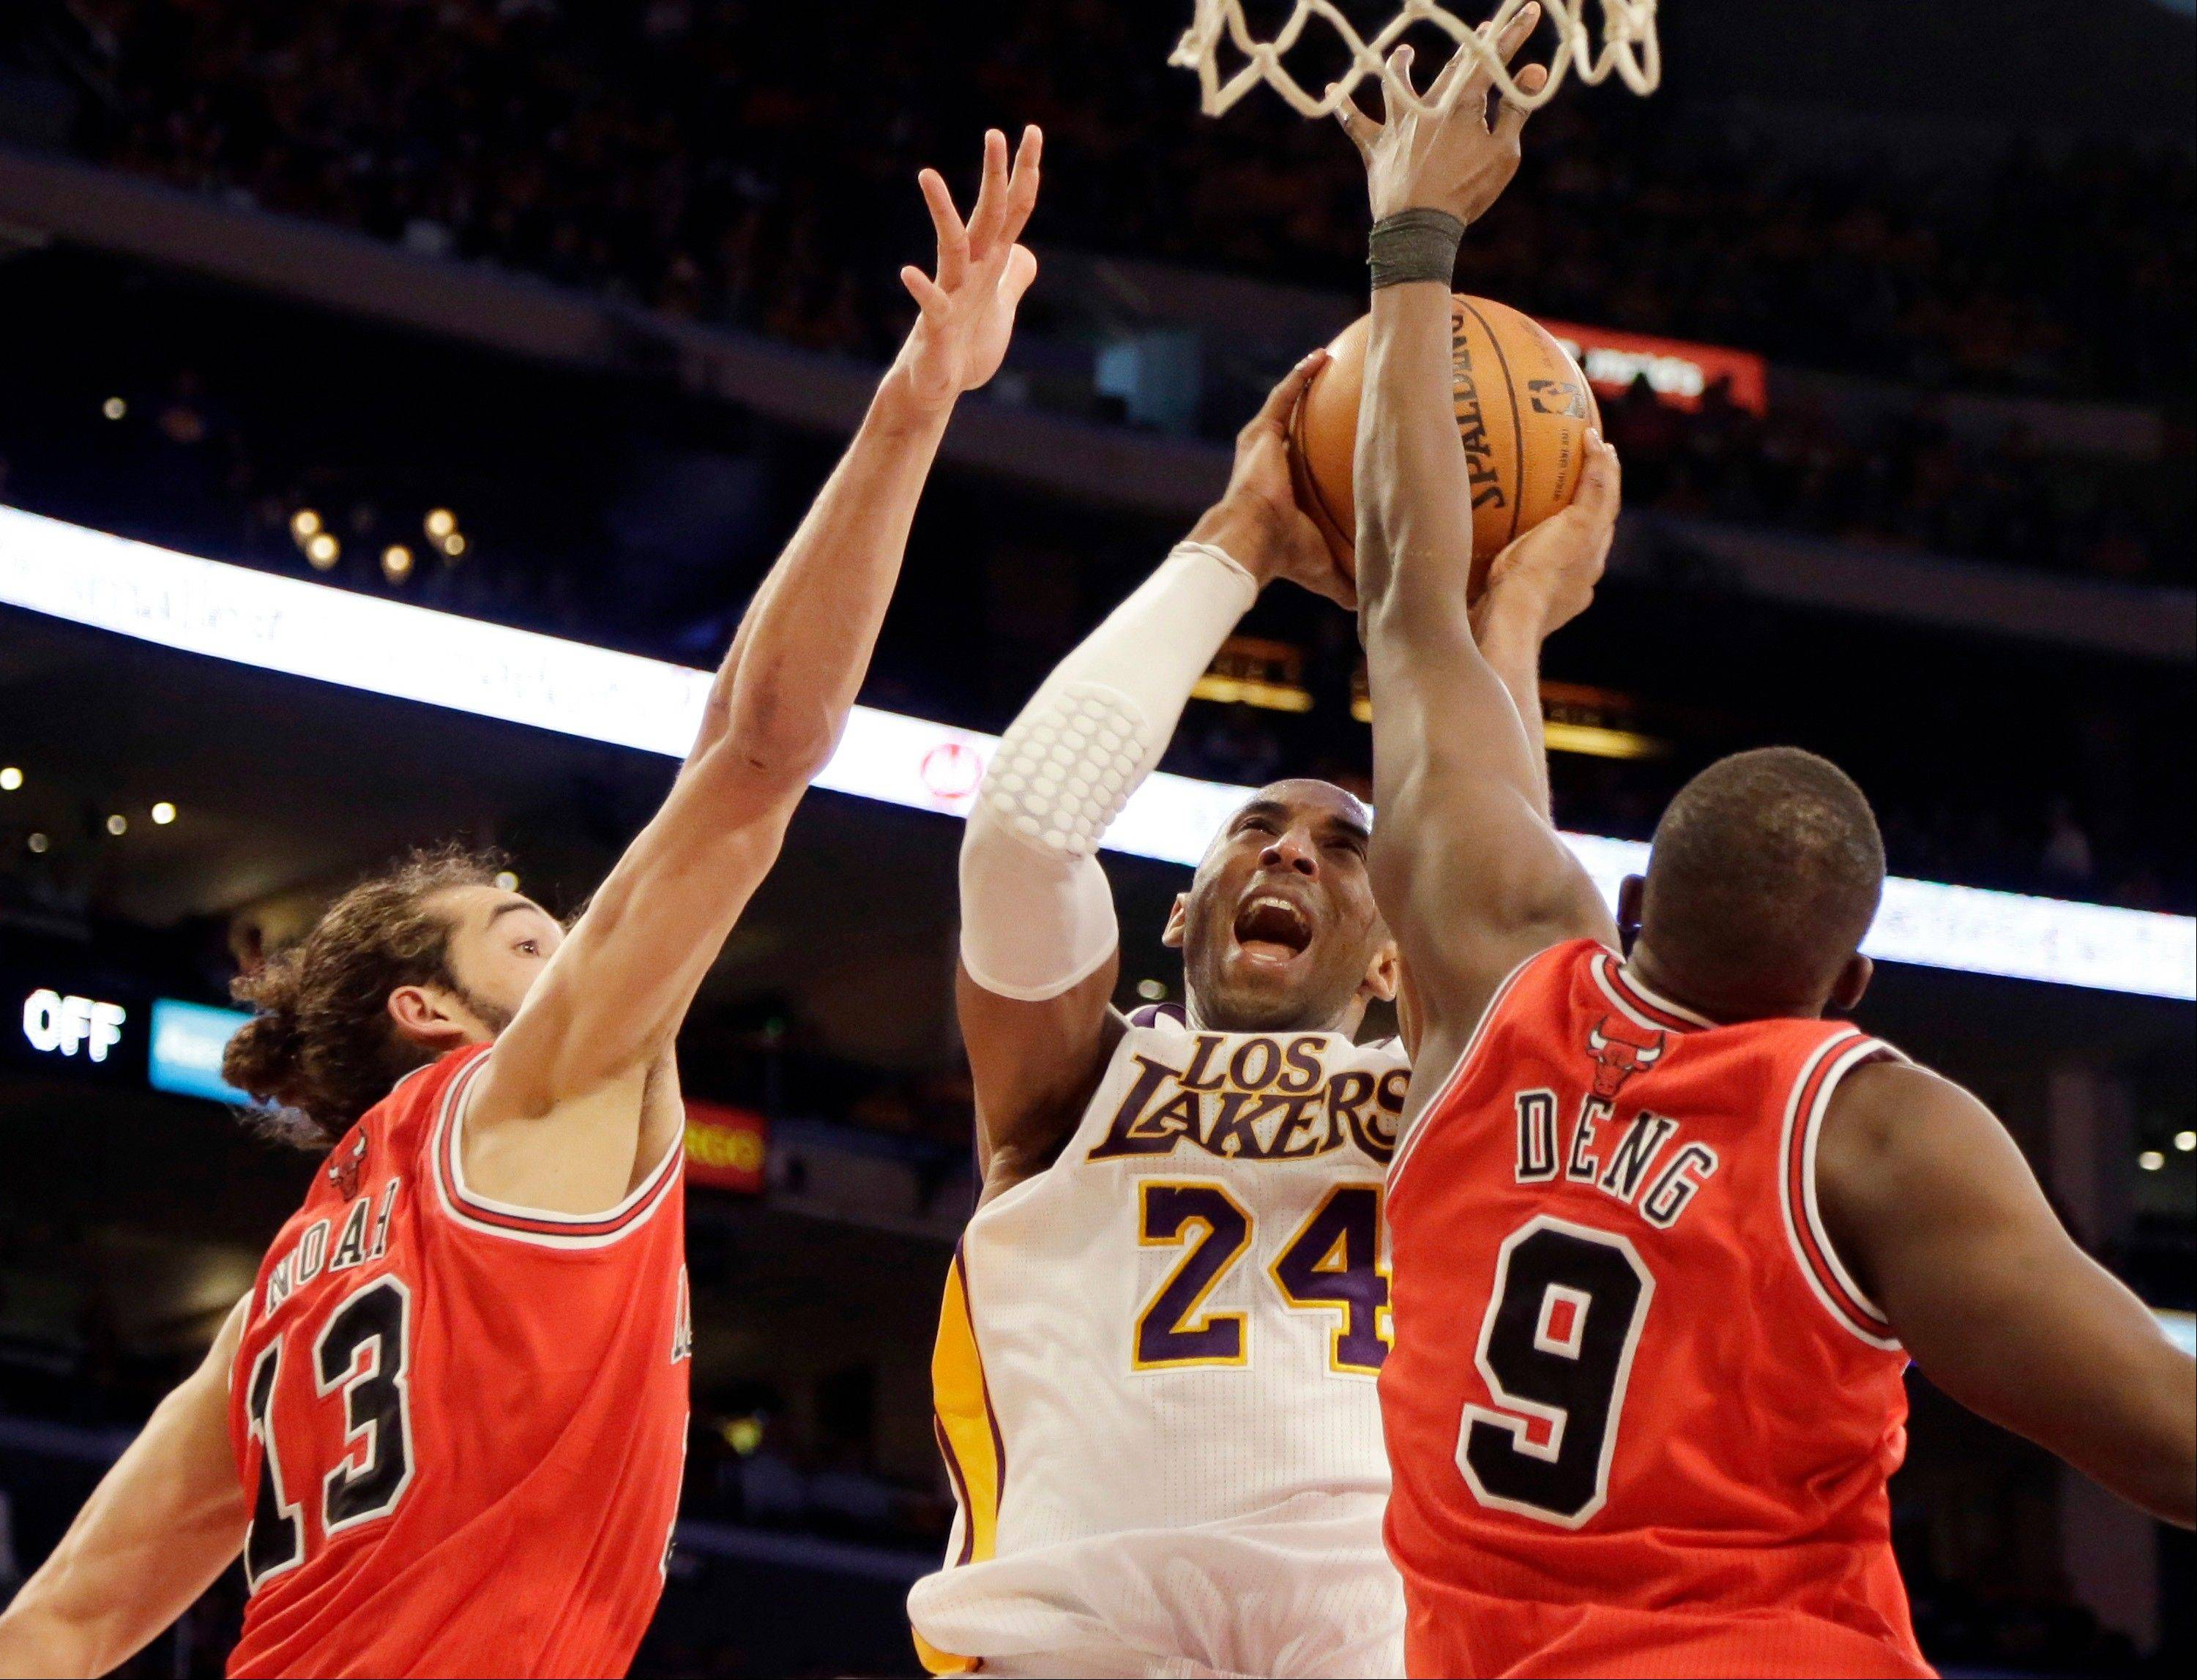 Lakers guard Kobe Bryant shoots as he is defended by the Bulls' Joakim Noah and Luol Deng in the first half Sunday in Los Angeles.